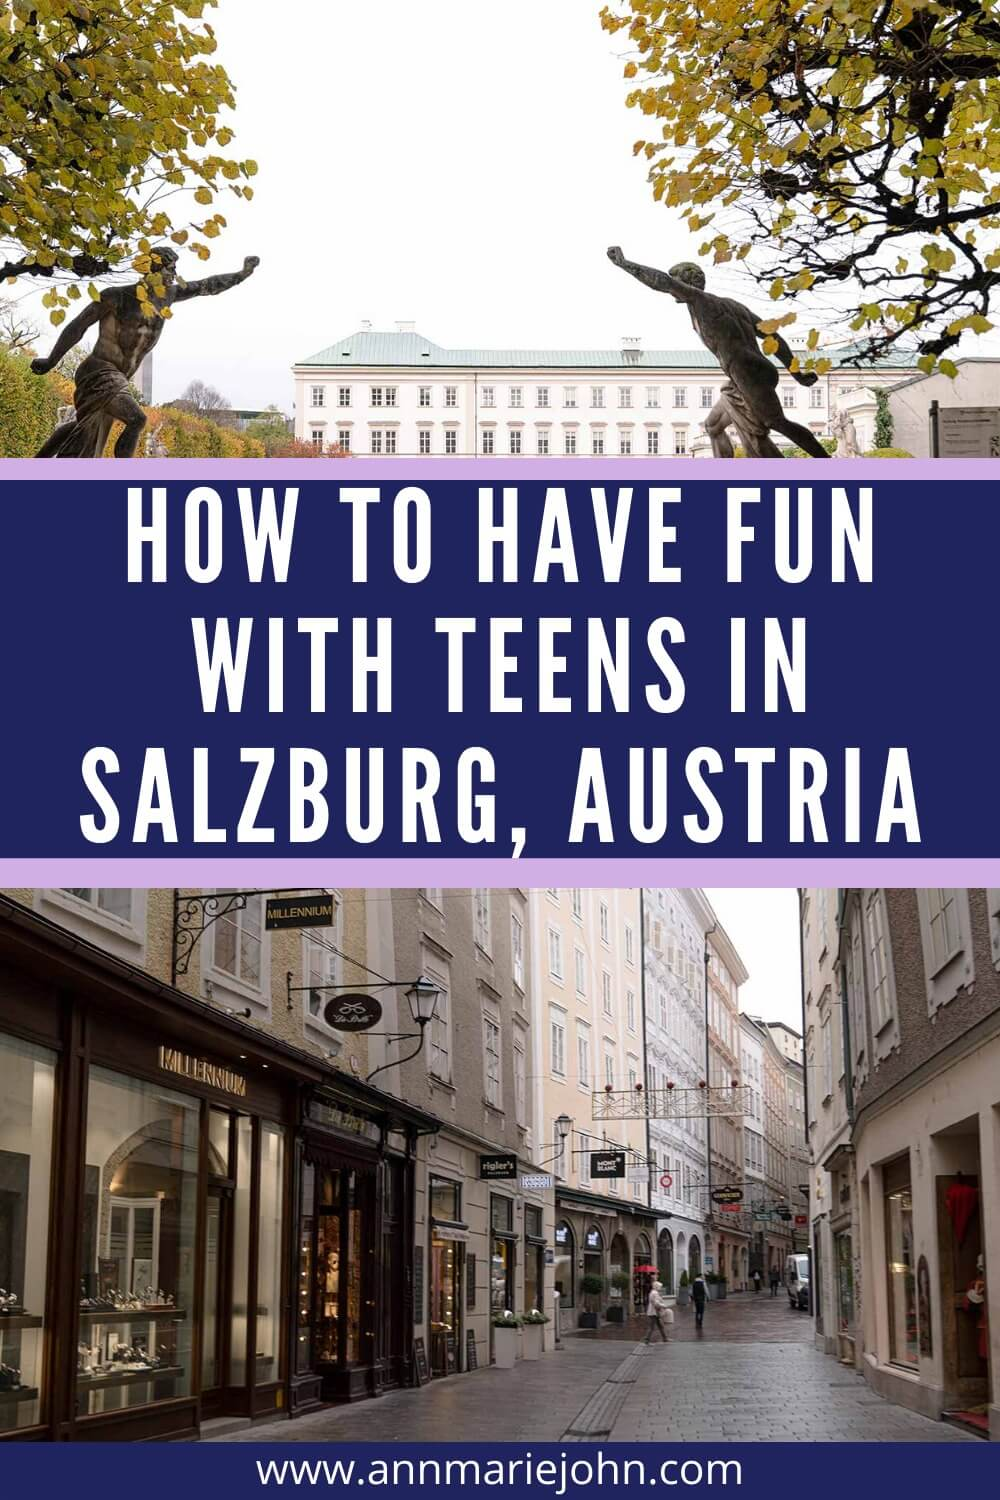 How to have Fun with Teens in Salzburg, Austria